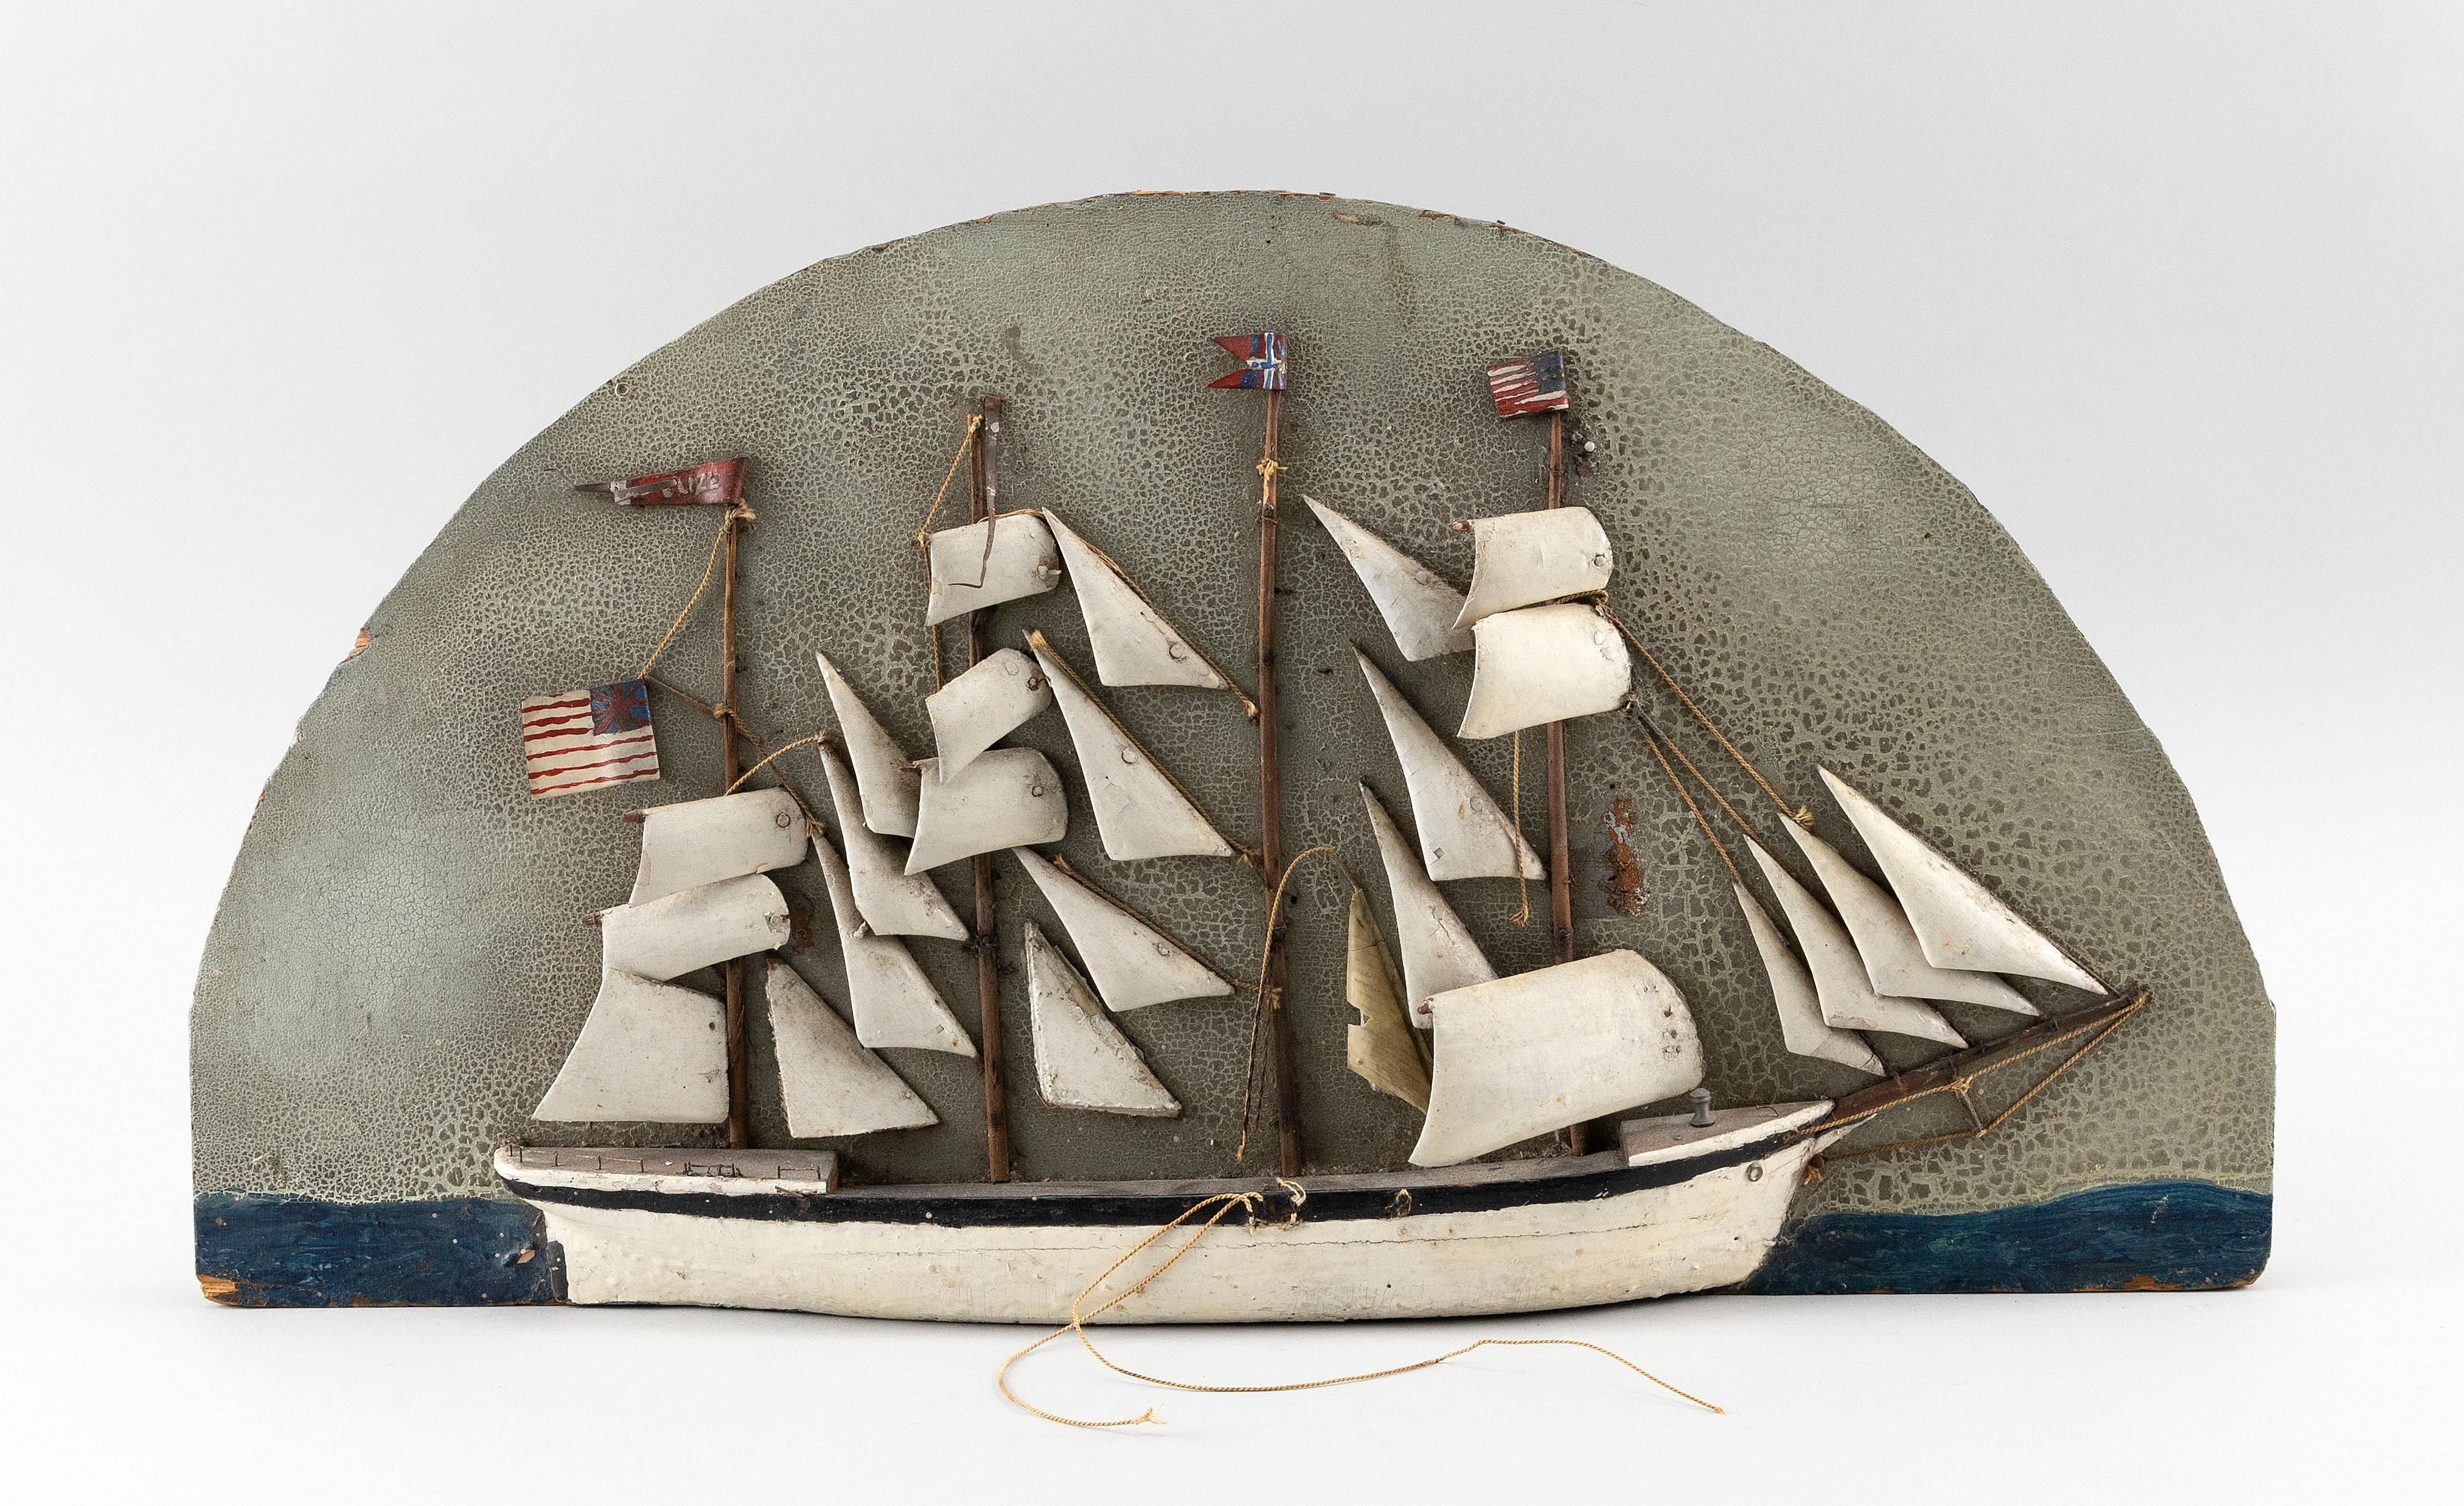 """DIORAMA OF A FOUR-MASTED SHIP With a black and white hull. Flying an American flag. Height 11.5"""". Length 21""""."""